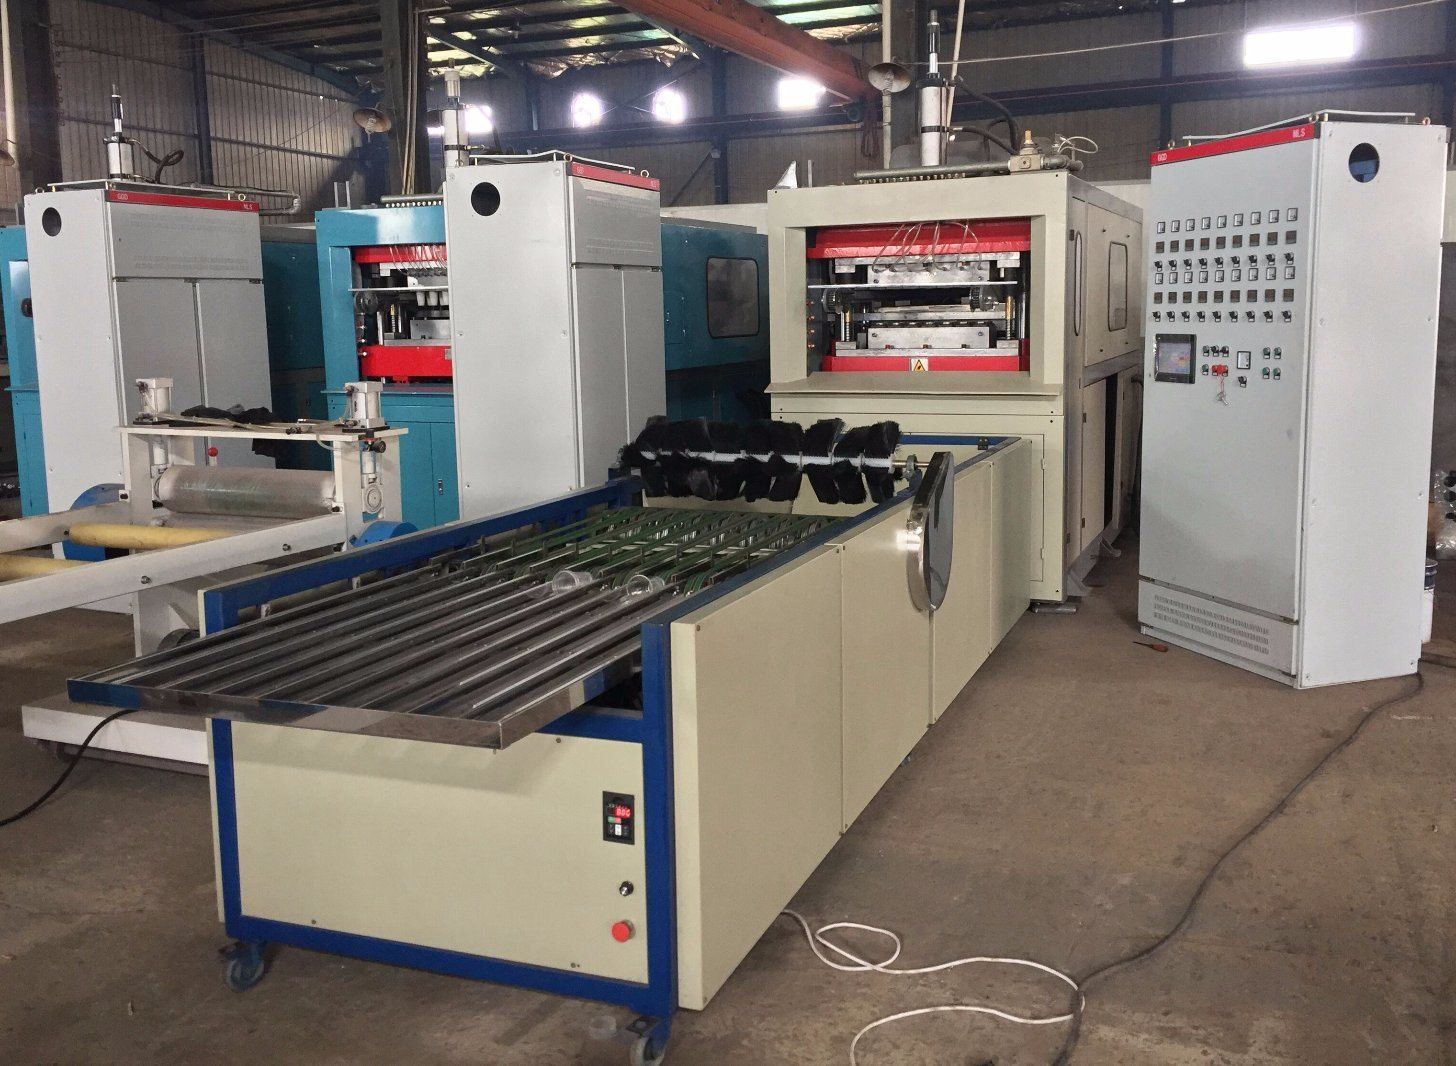 Plastic Cup Making Machine, Thermoforming Machine, Forming Machine, Plastic Cup Machine Connect with Stacker, Plastic Cup Thermocol and Stacking Machine (YXTL)